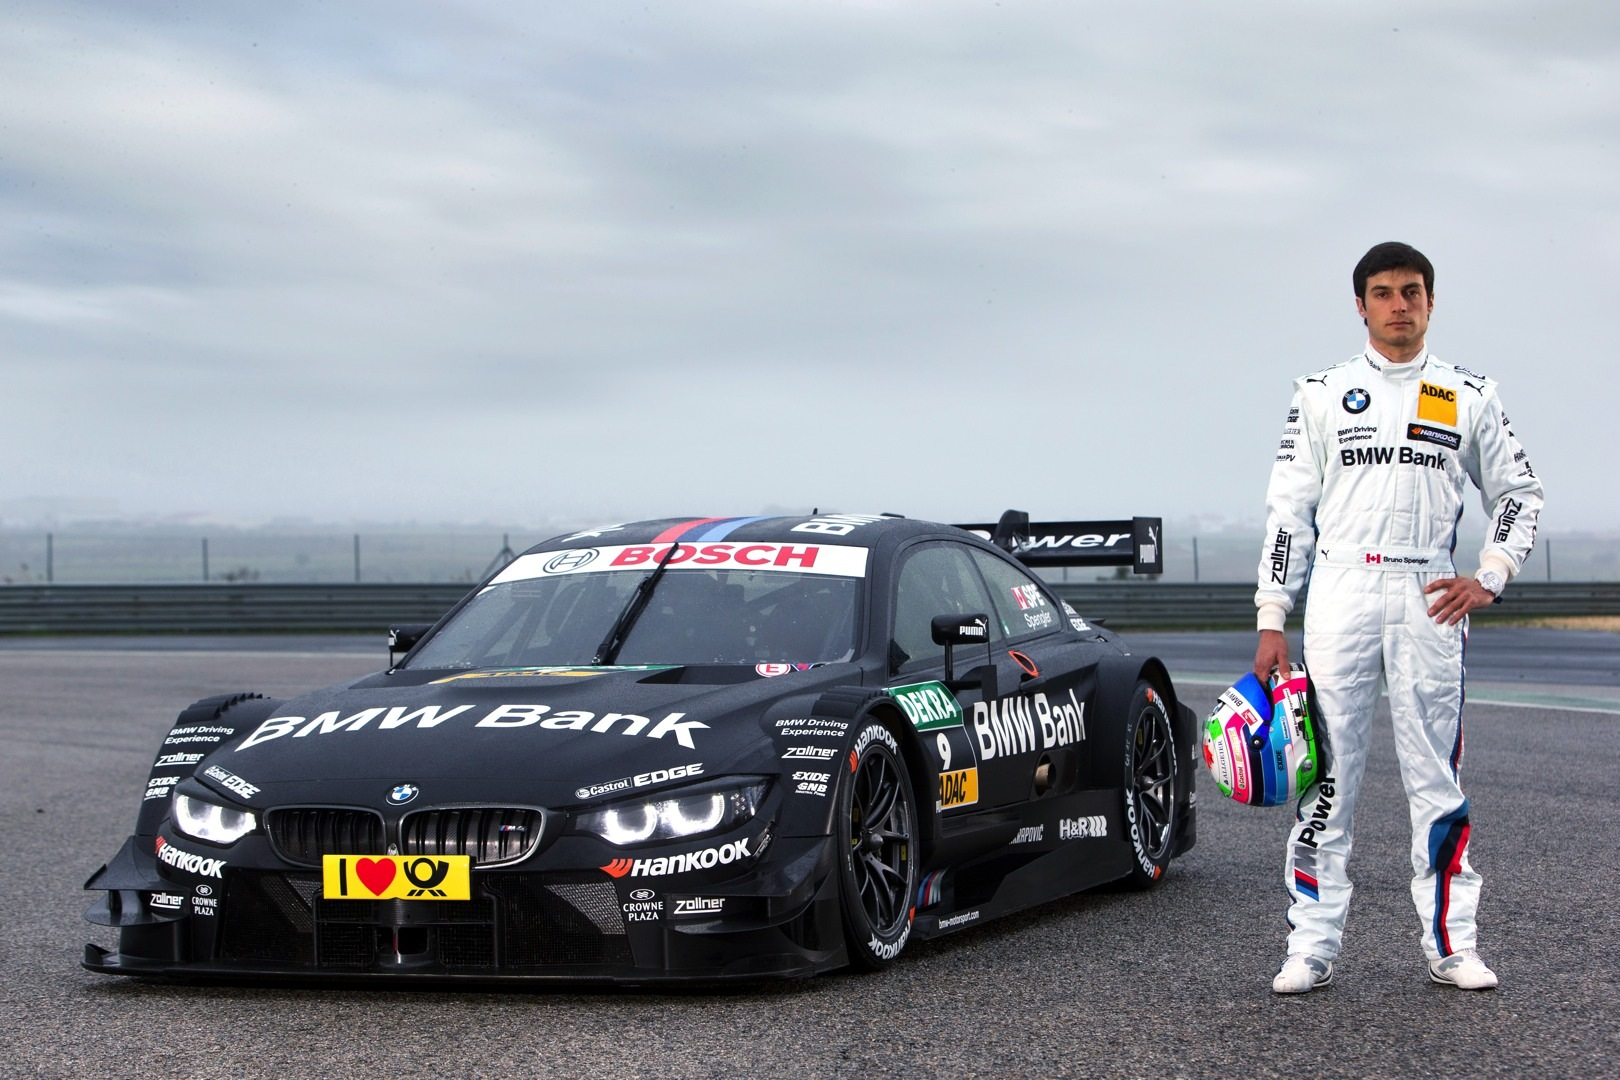 Four Bmw M4 Dtm Liveries Revealed Autoevolution